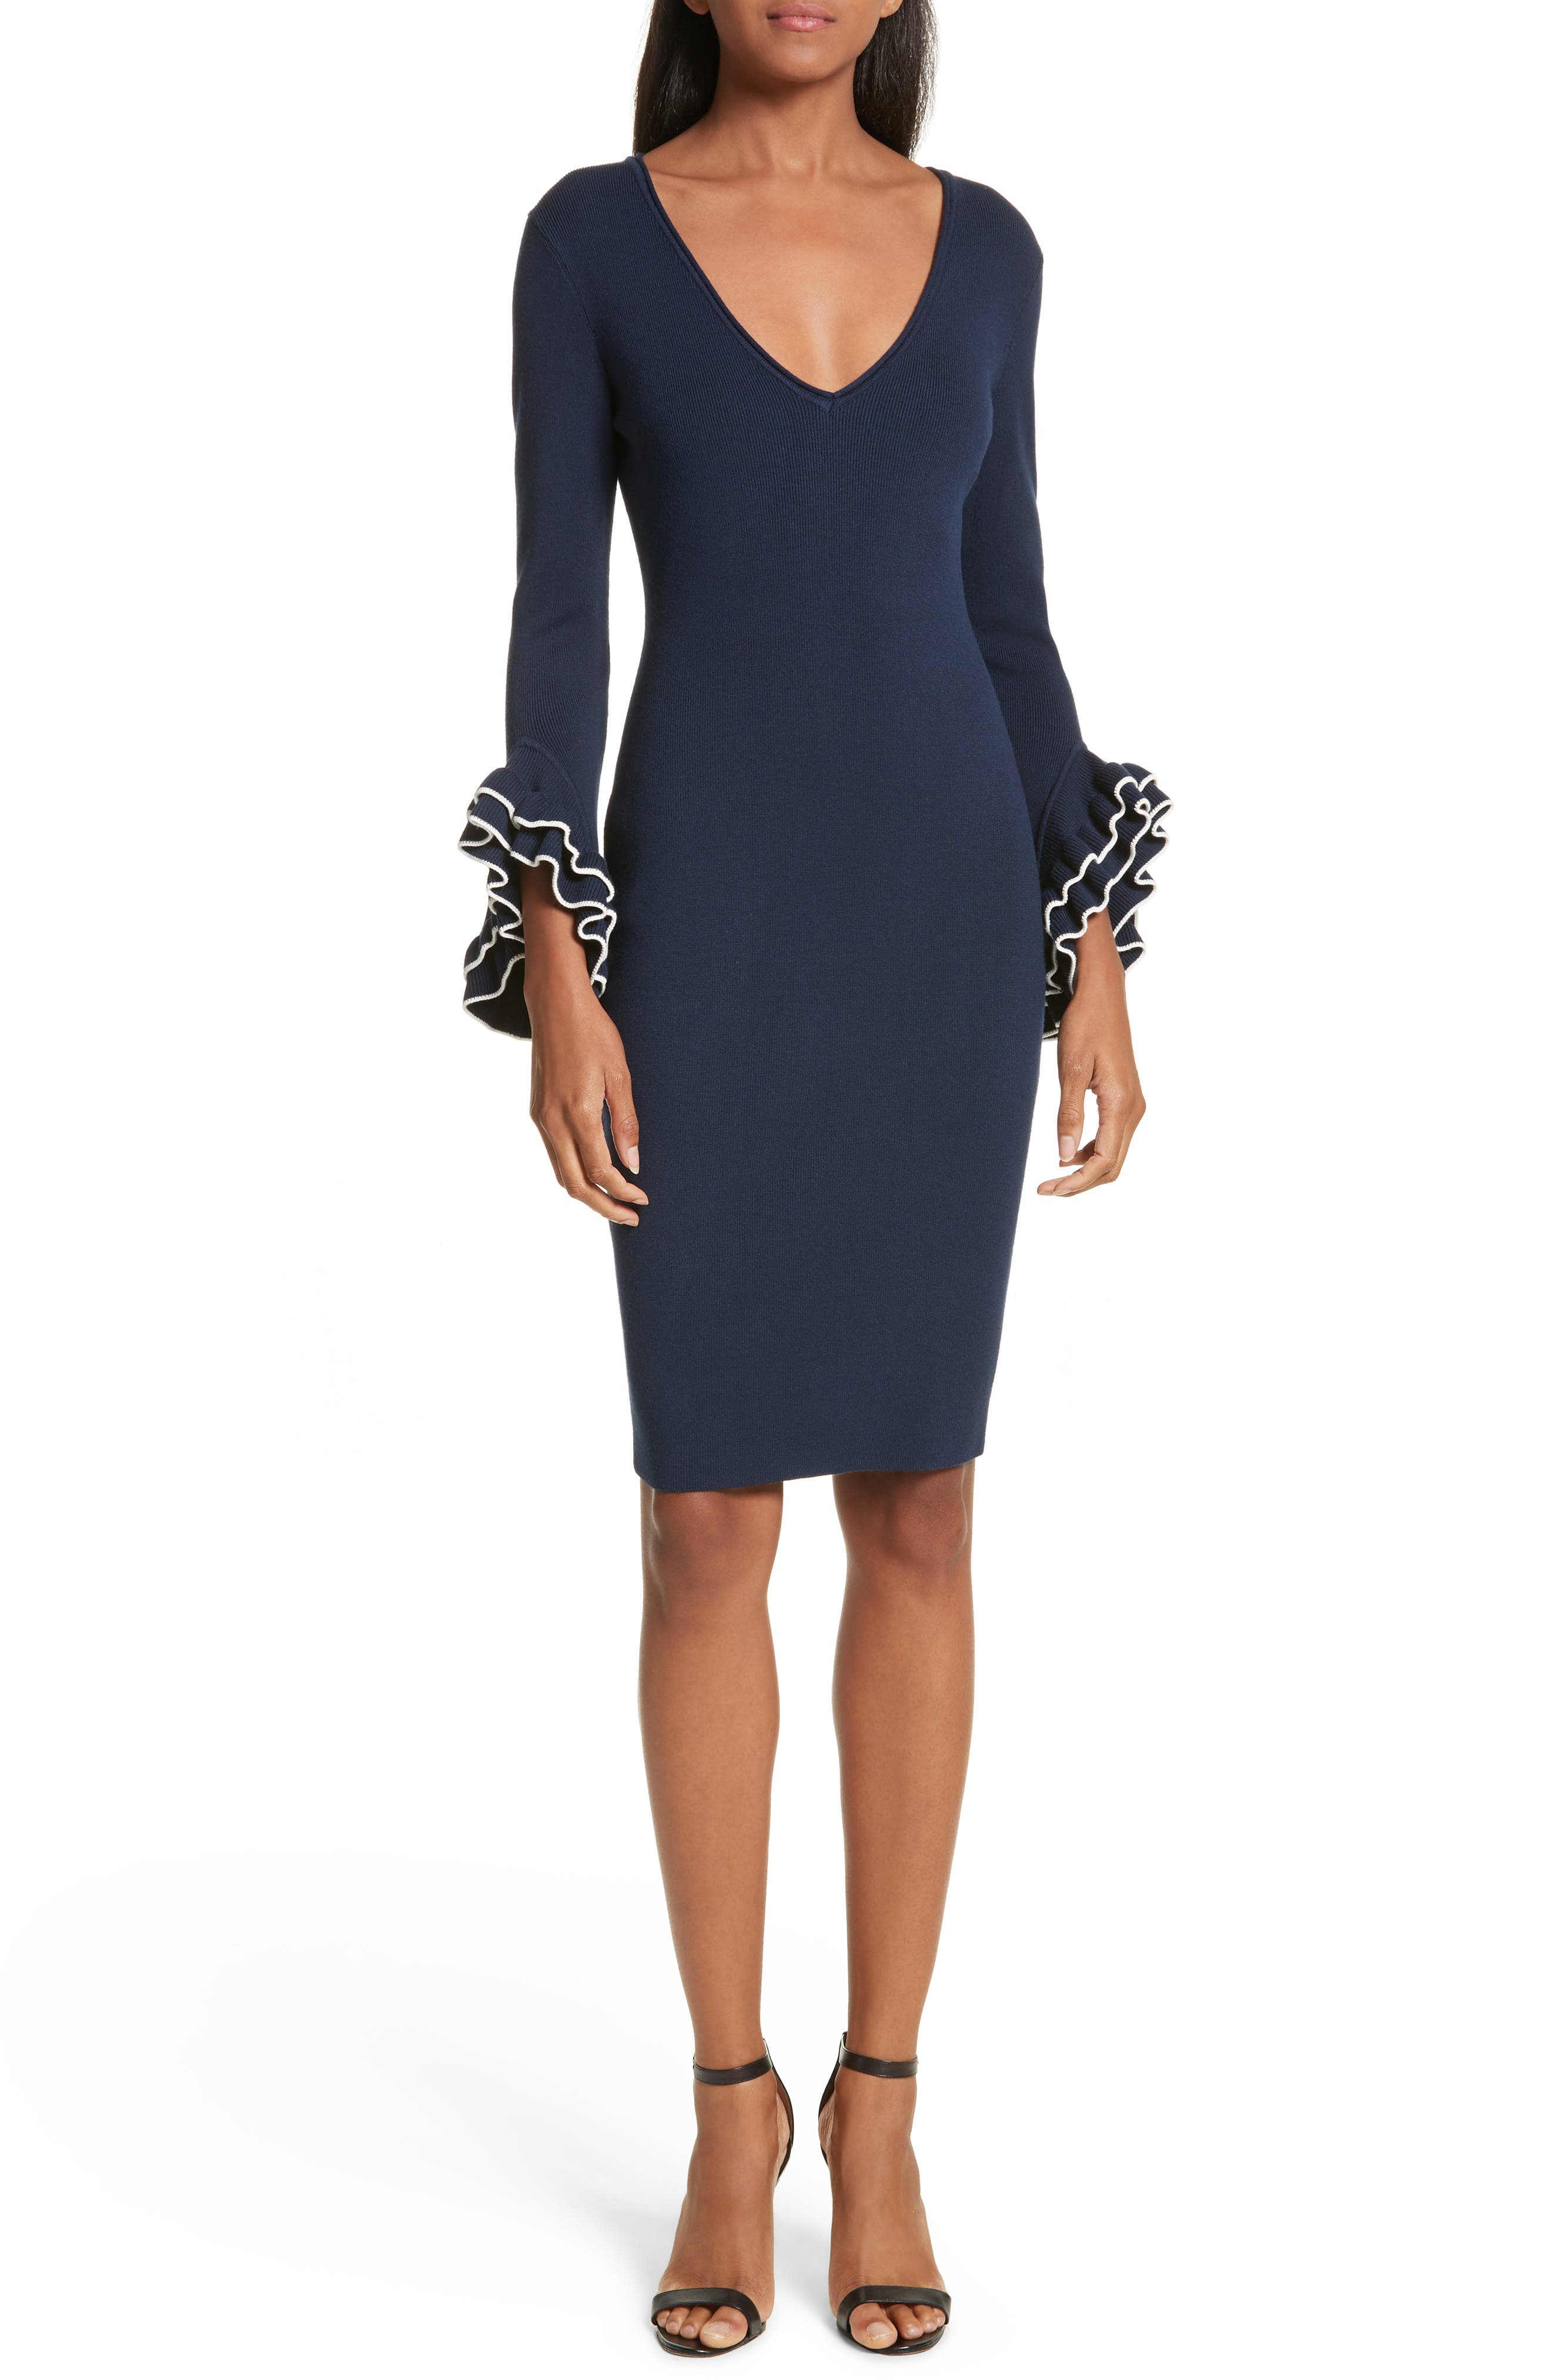 Ruffle Sleeve Sheath Dress,                             Main thumbnail 1, color,                             473